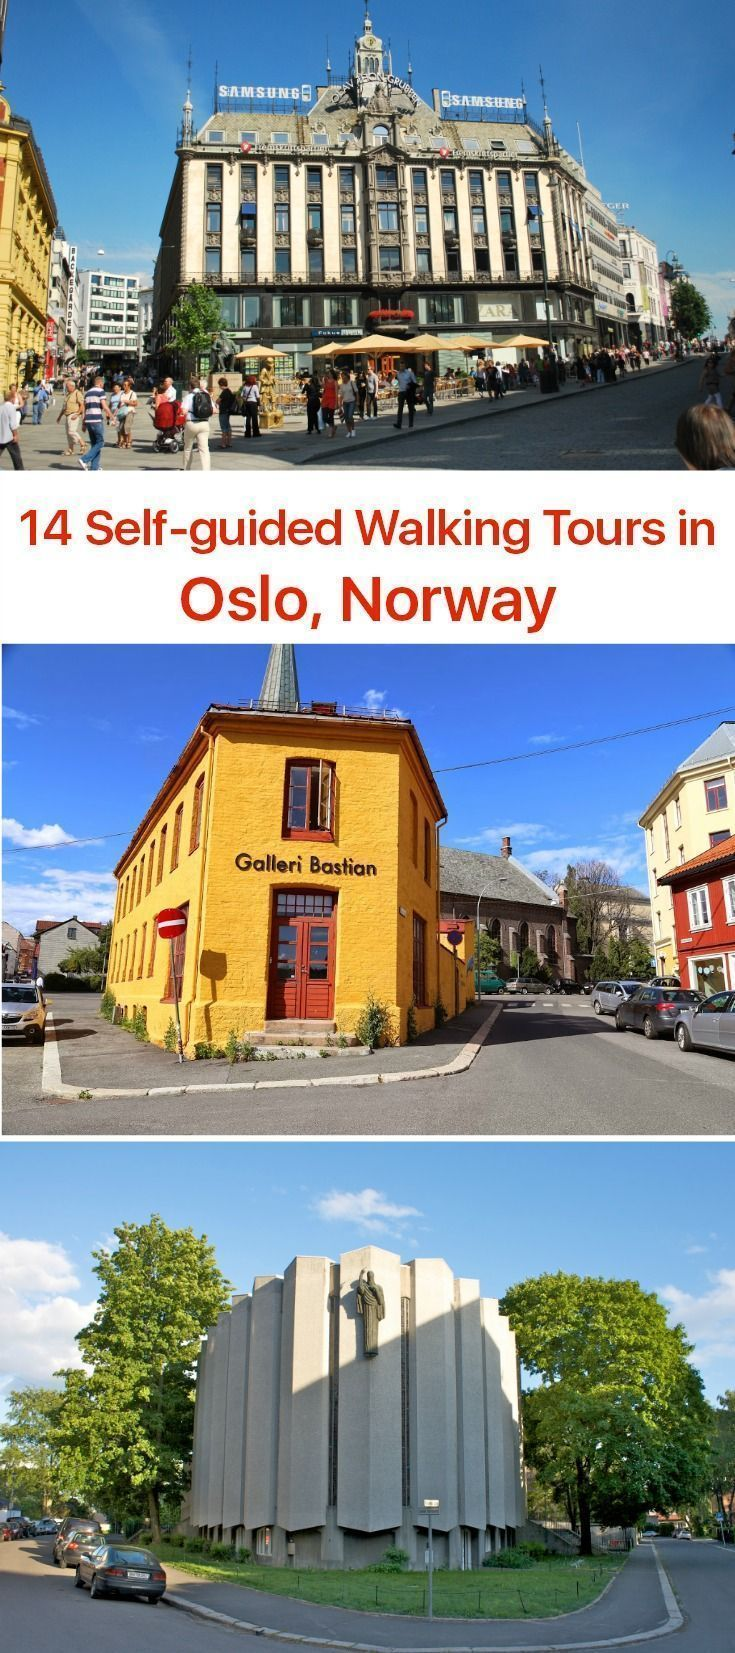 The capital of Norway, Oslo is recognized as one of the most comfortable, safest and, subsequently, most expensive cities in the world to live in. The city's population has been steadily growing in recent years thanks to the influx of immigrants, as well as visiting travelers.